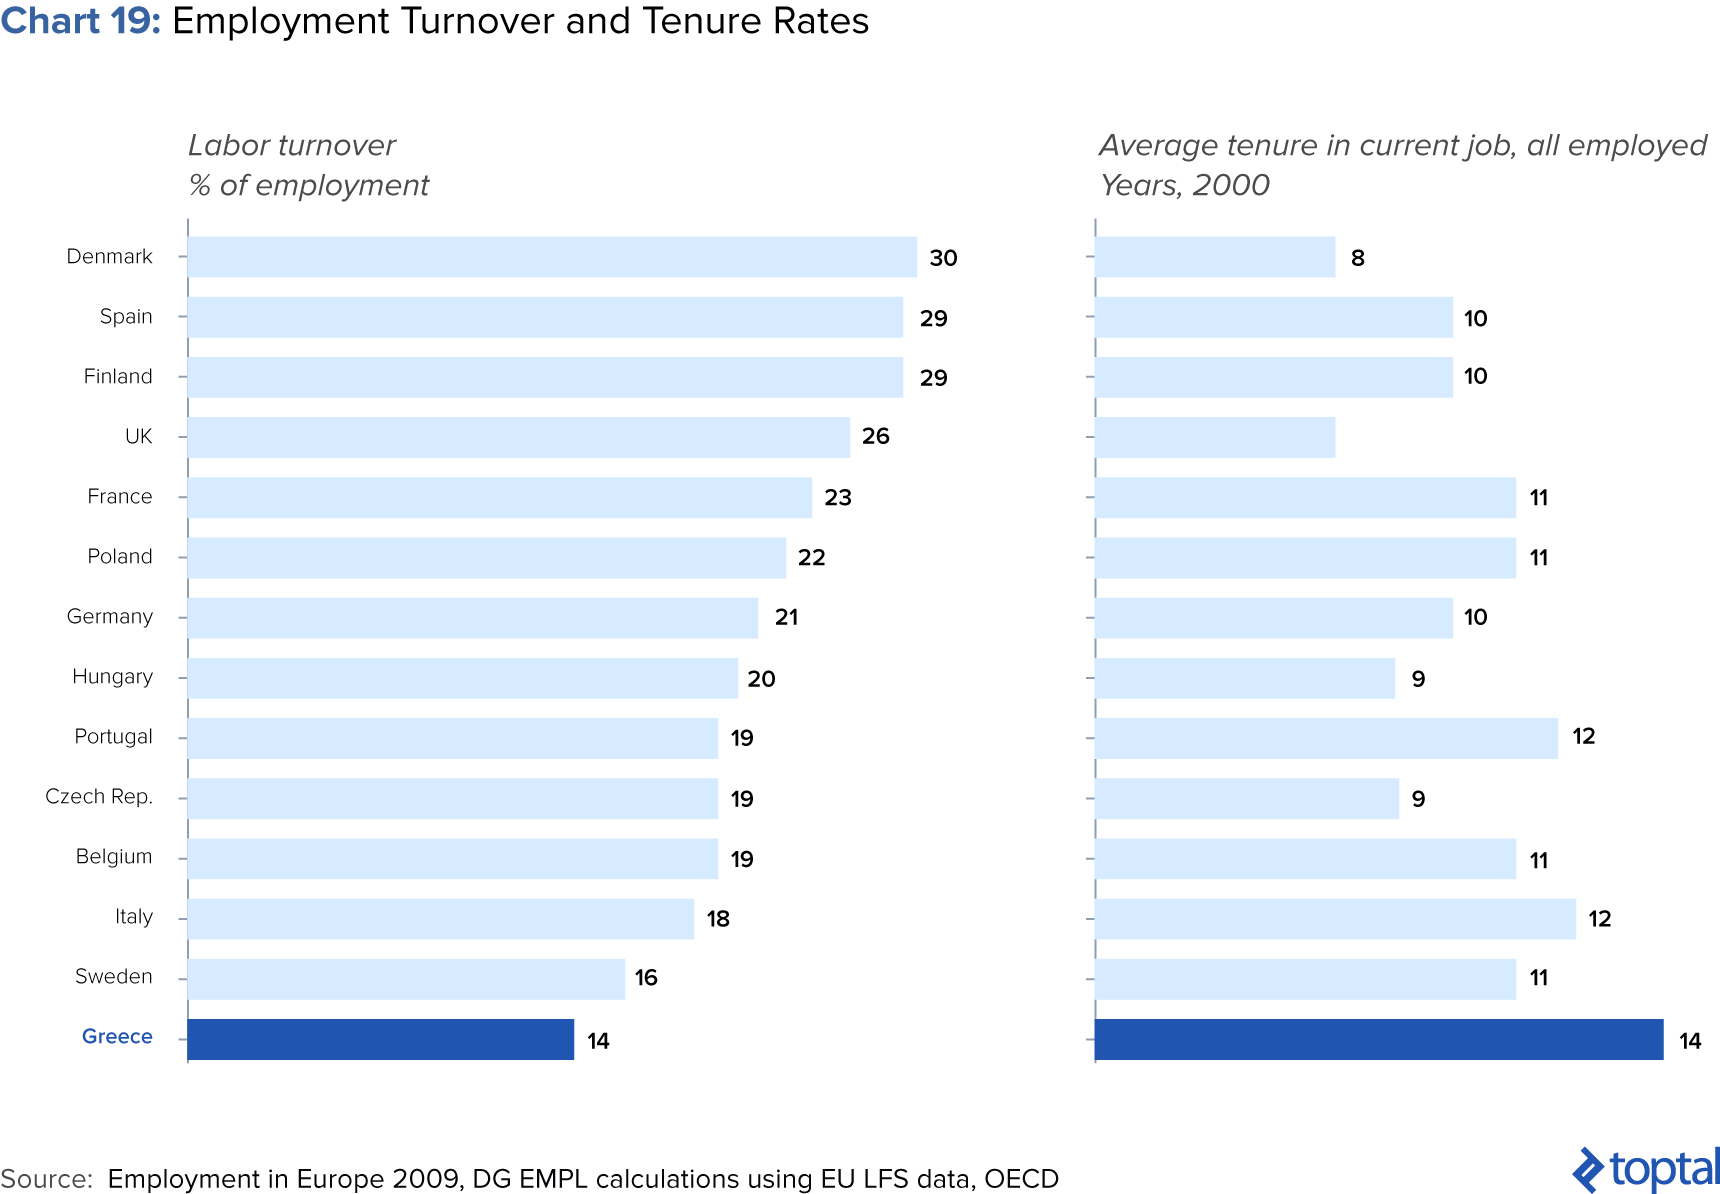 Chart 19: Employment Tenure and Turnover Rates